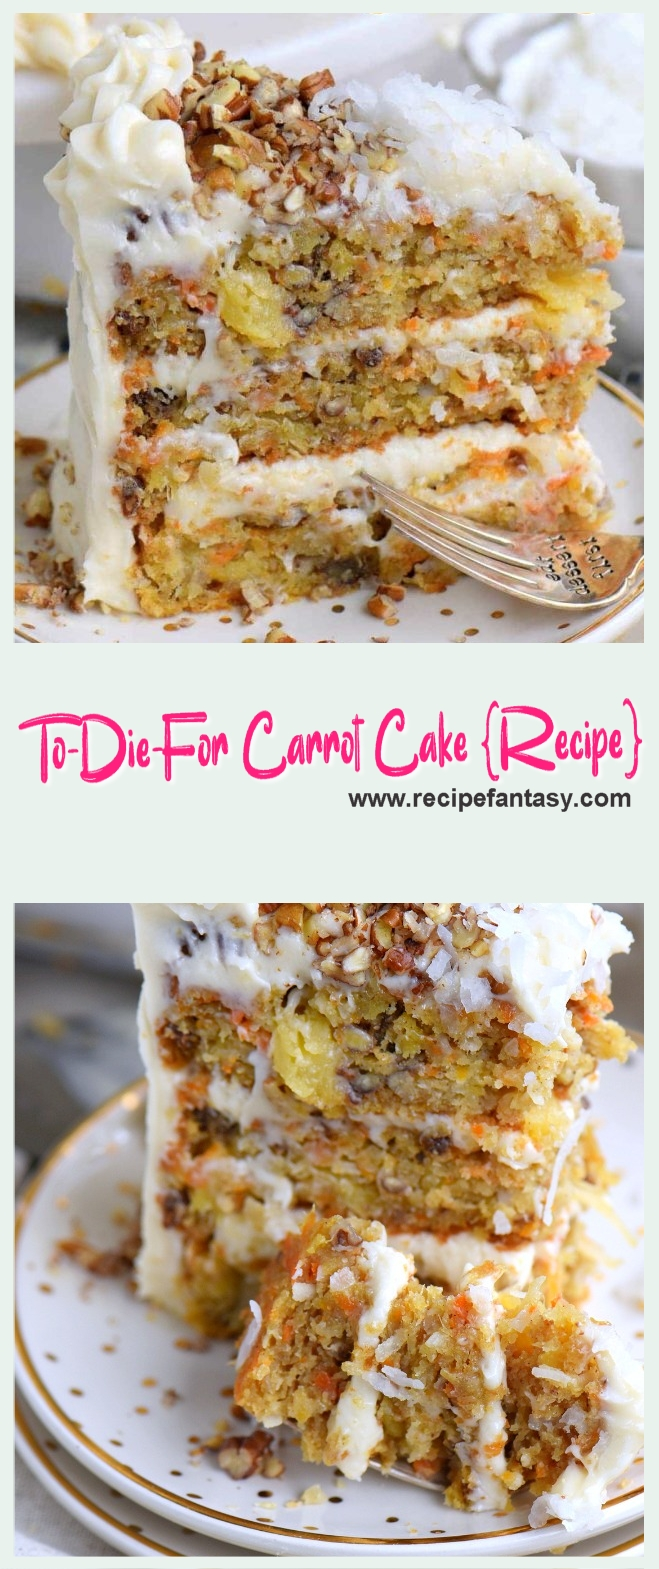 To Die For Carrot Cake {Recipe}